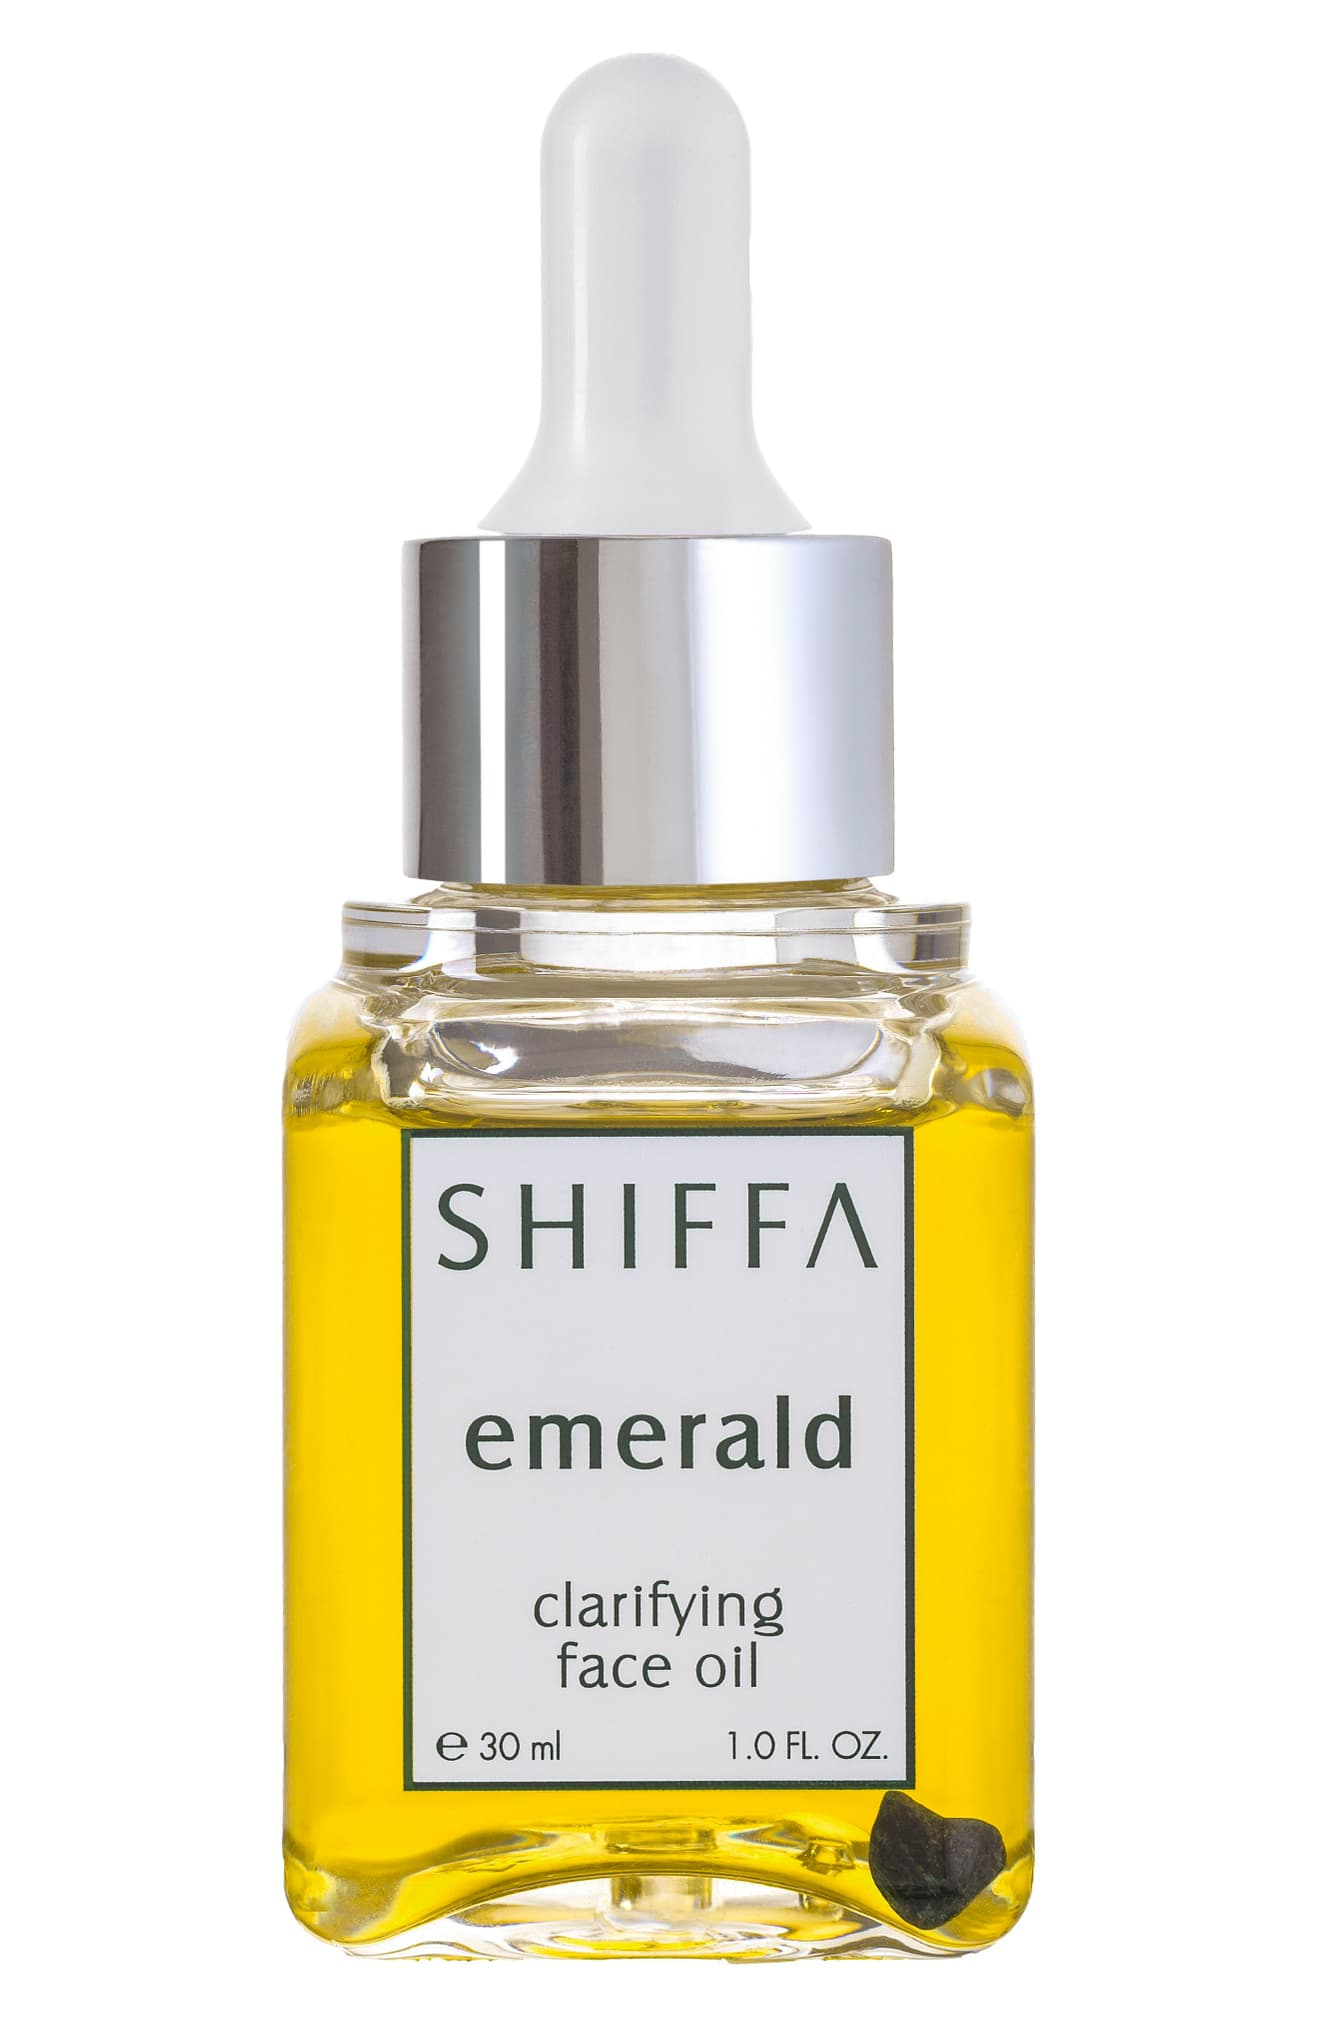 SHIFFA Emerald Clarifying Face Oil